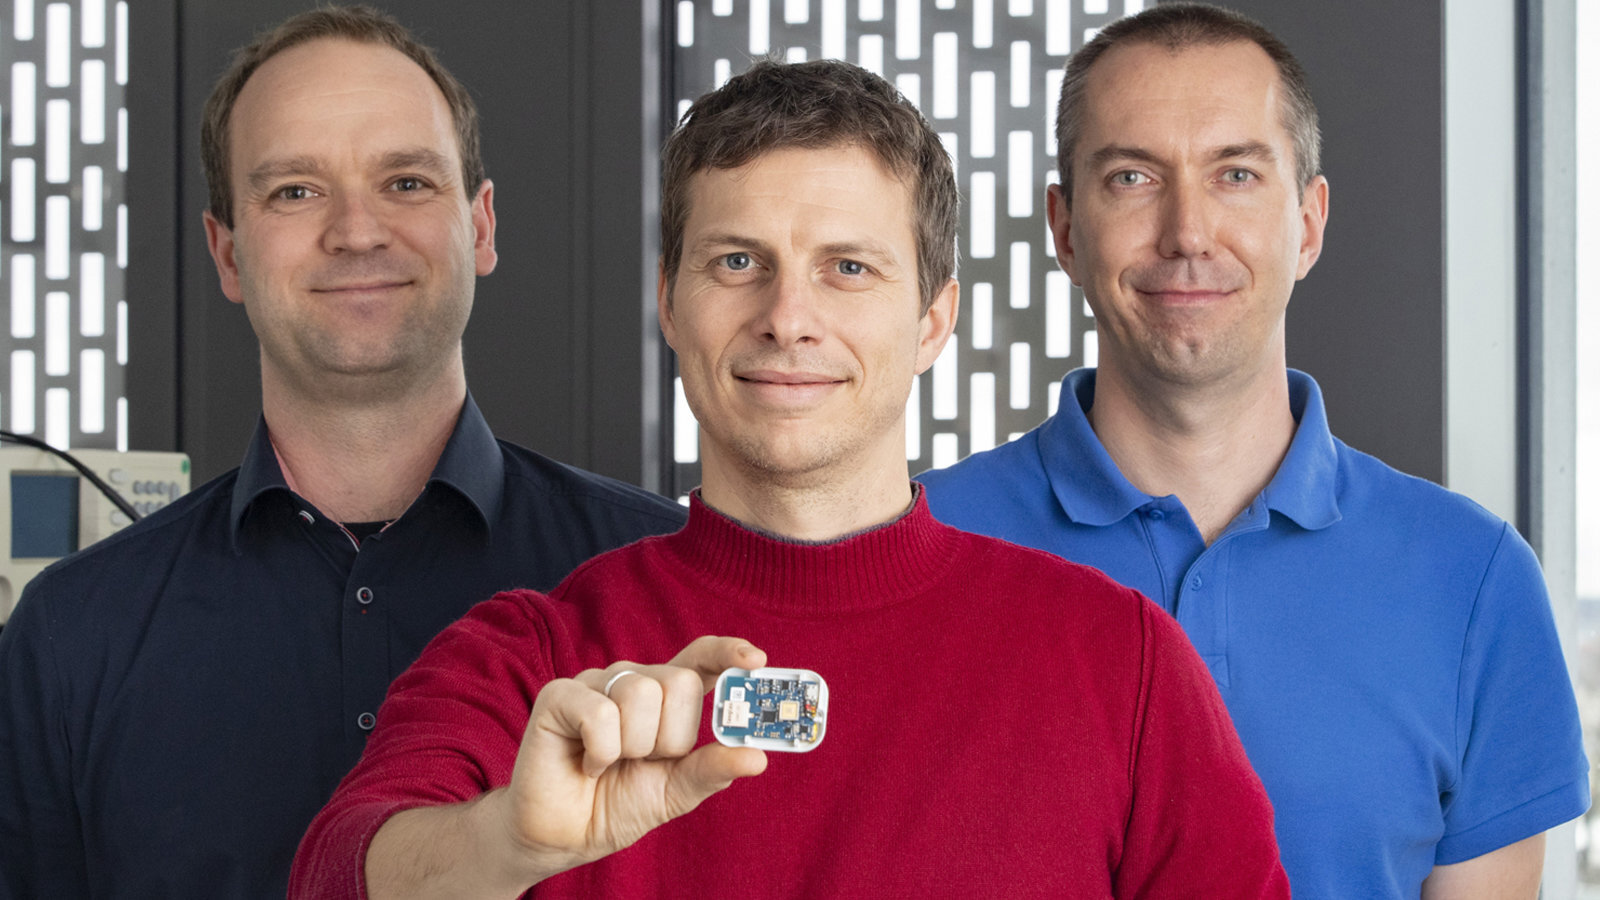 Three men. The man in the middle is holding a localizing chip.